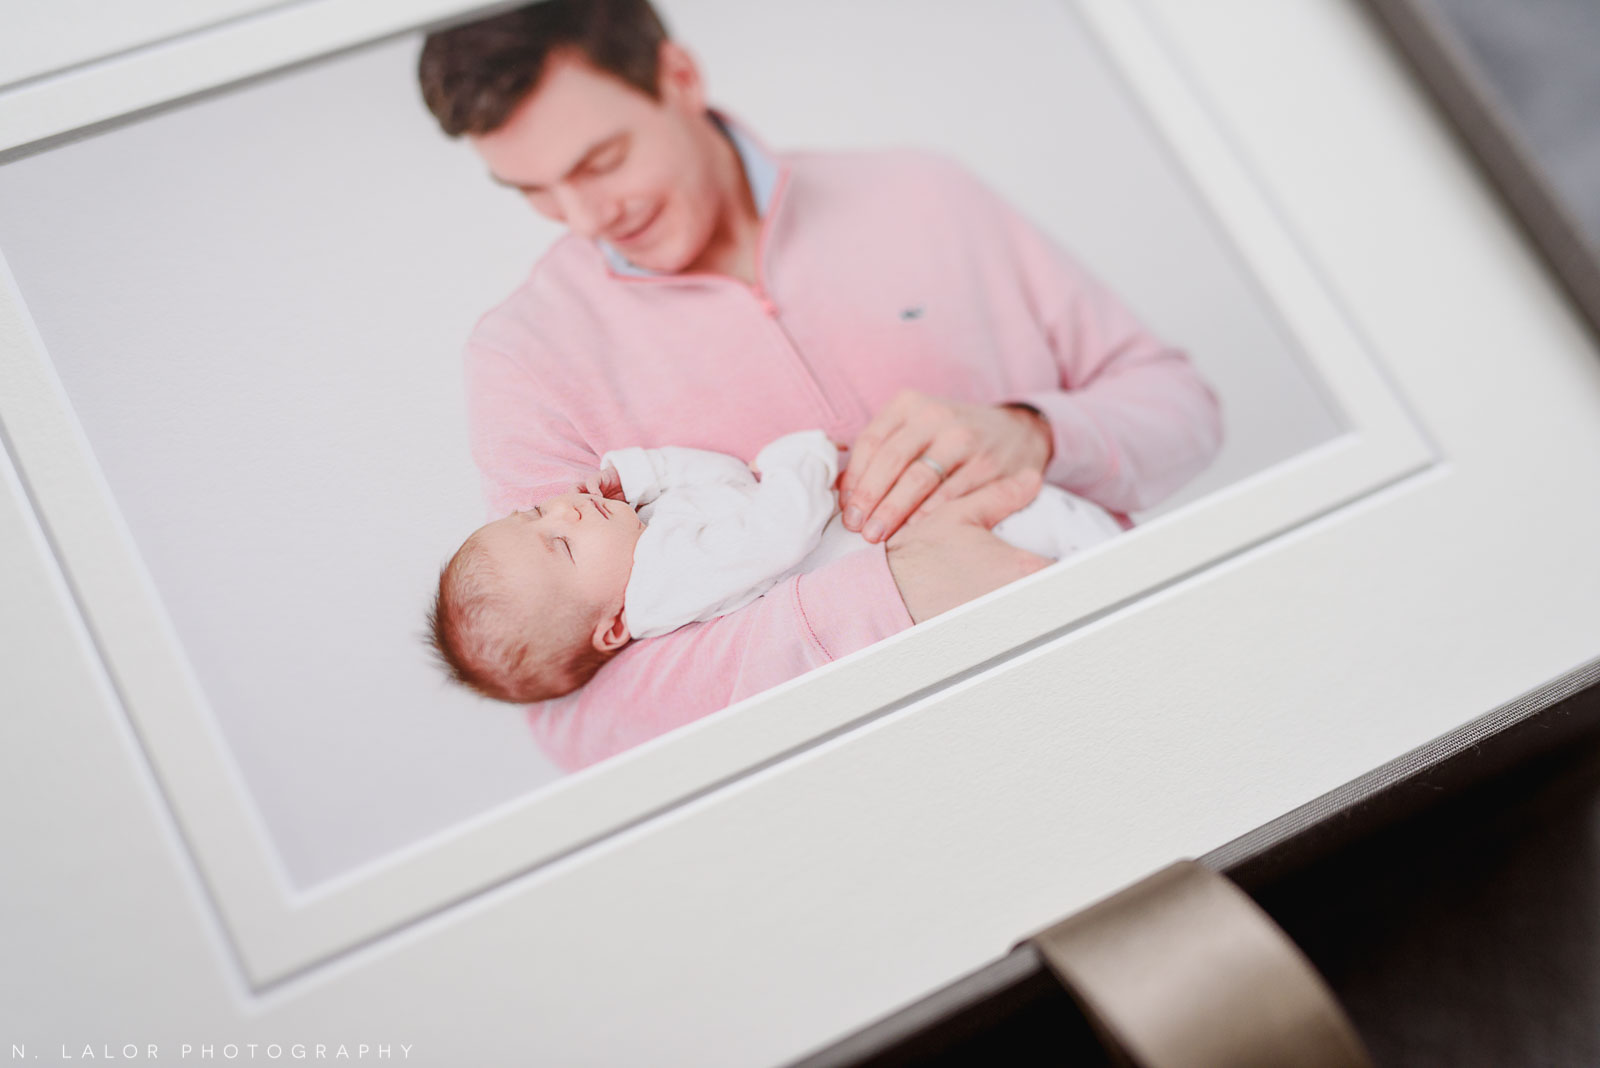 Fine art printed photograph of a dad and his baby girl. Studio portrait by N. Lalor Photography in Greenwich, Connecticut.